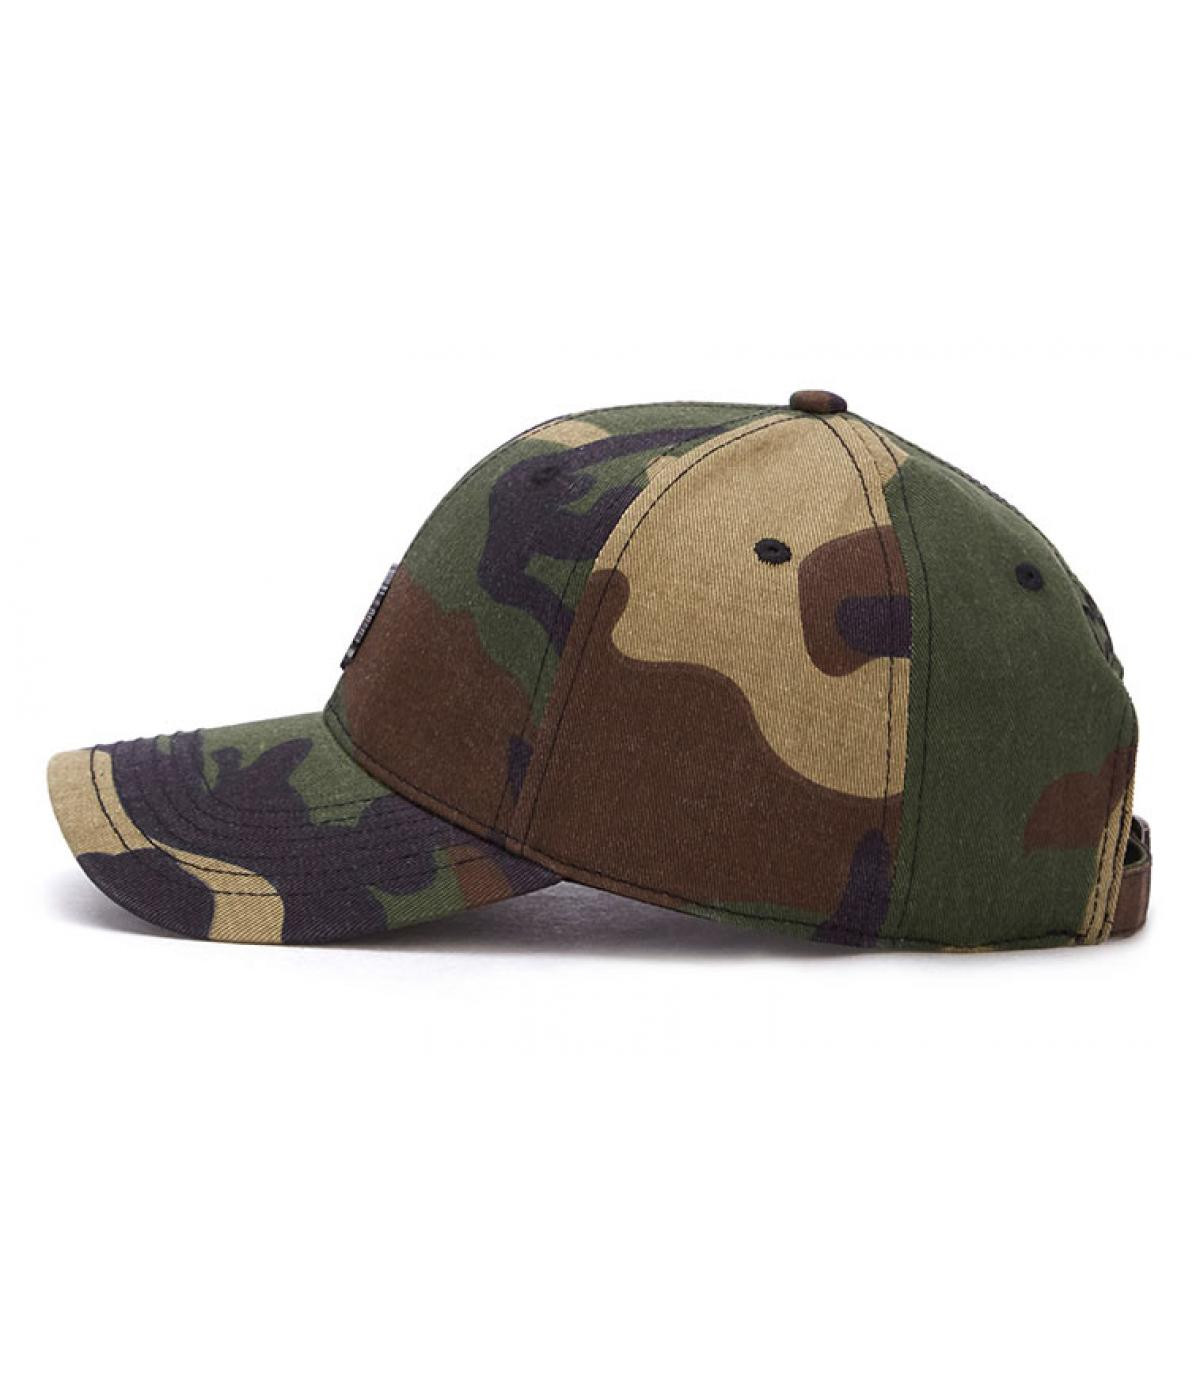 Détails Freedom Corps Curved camo - image 4